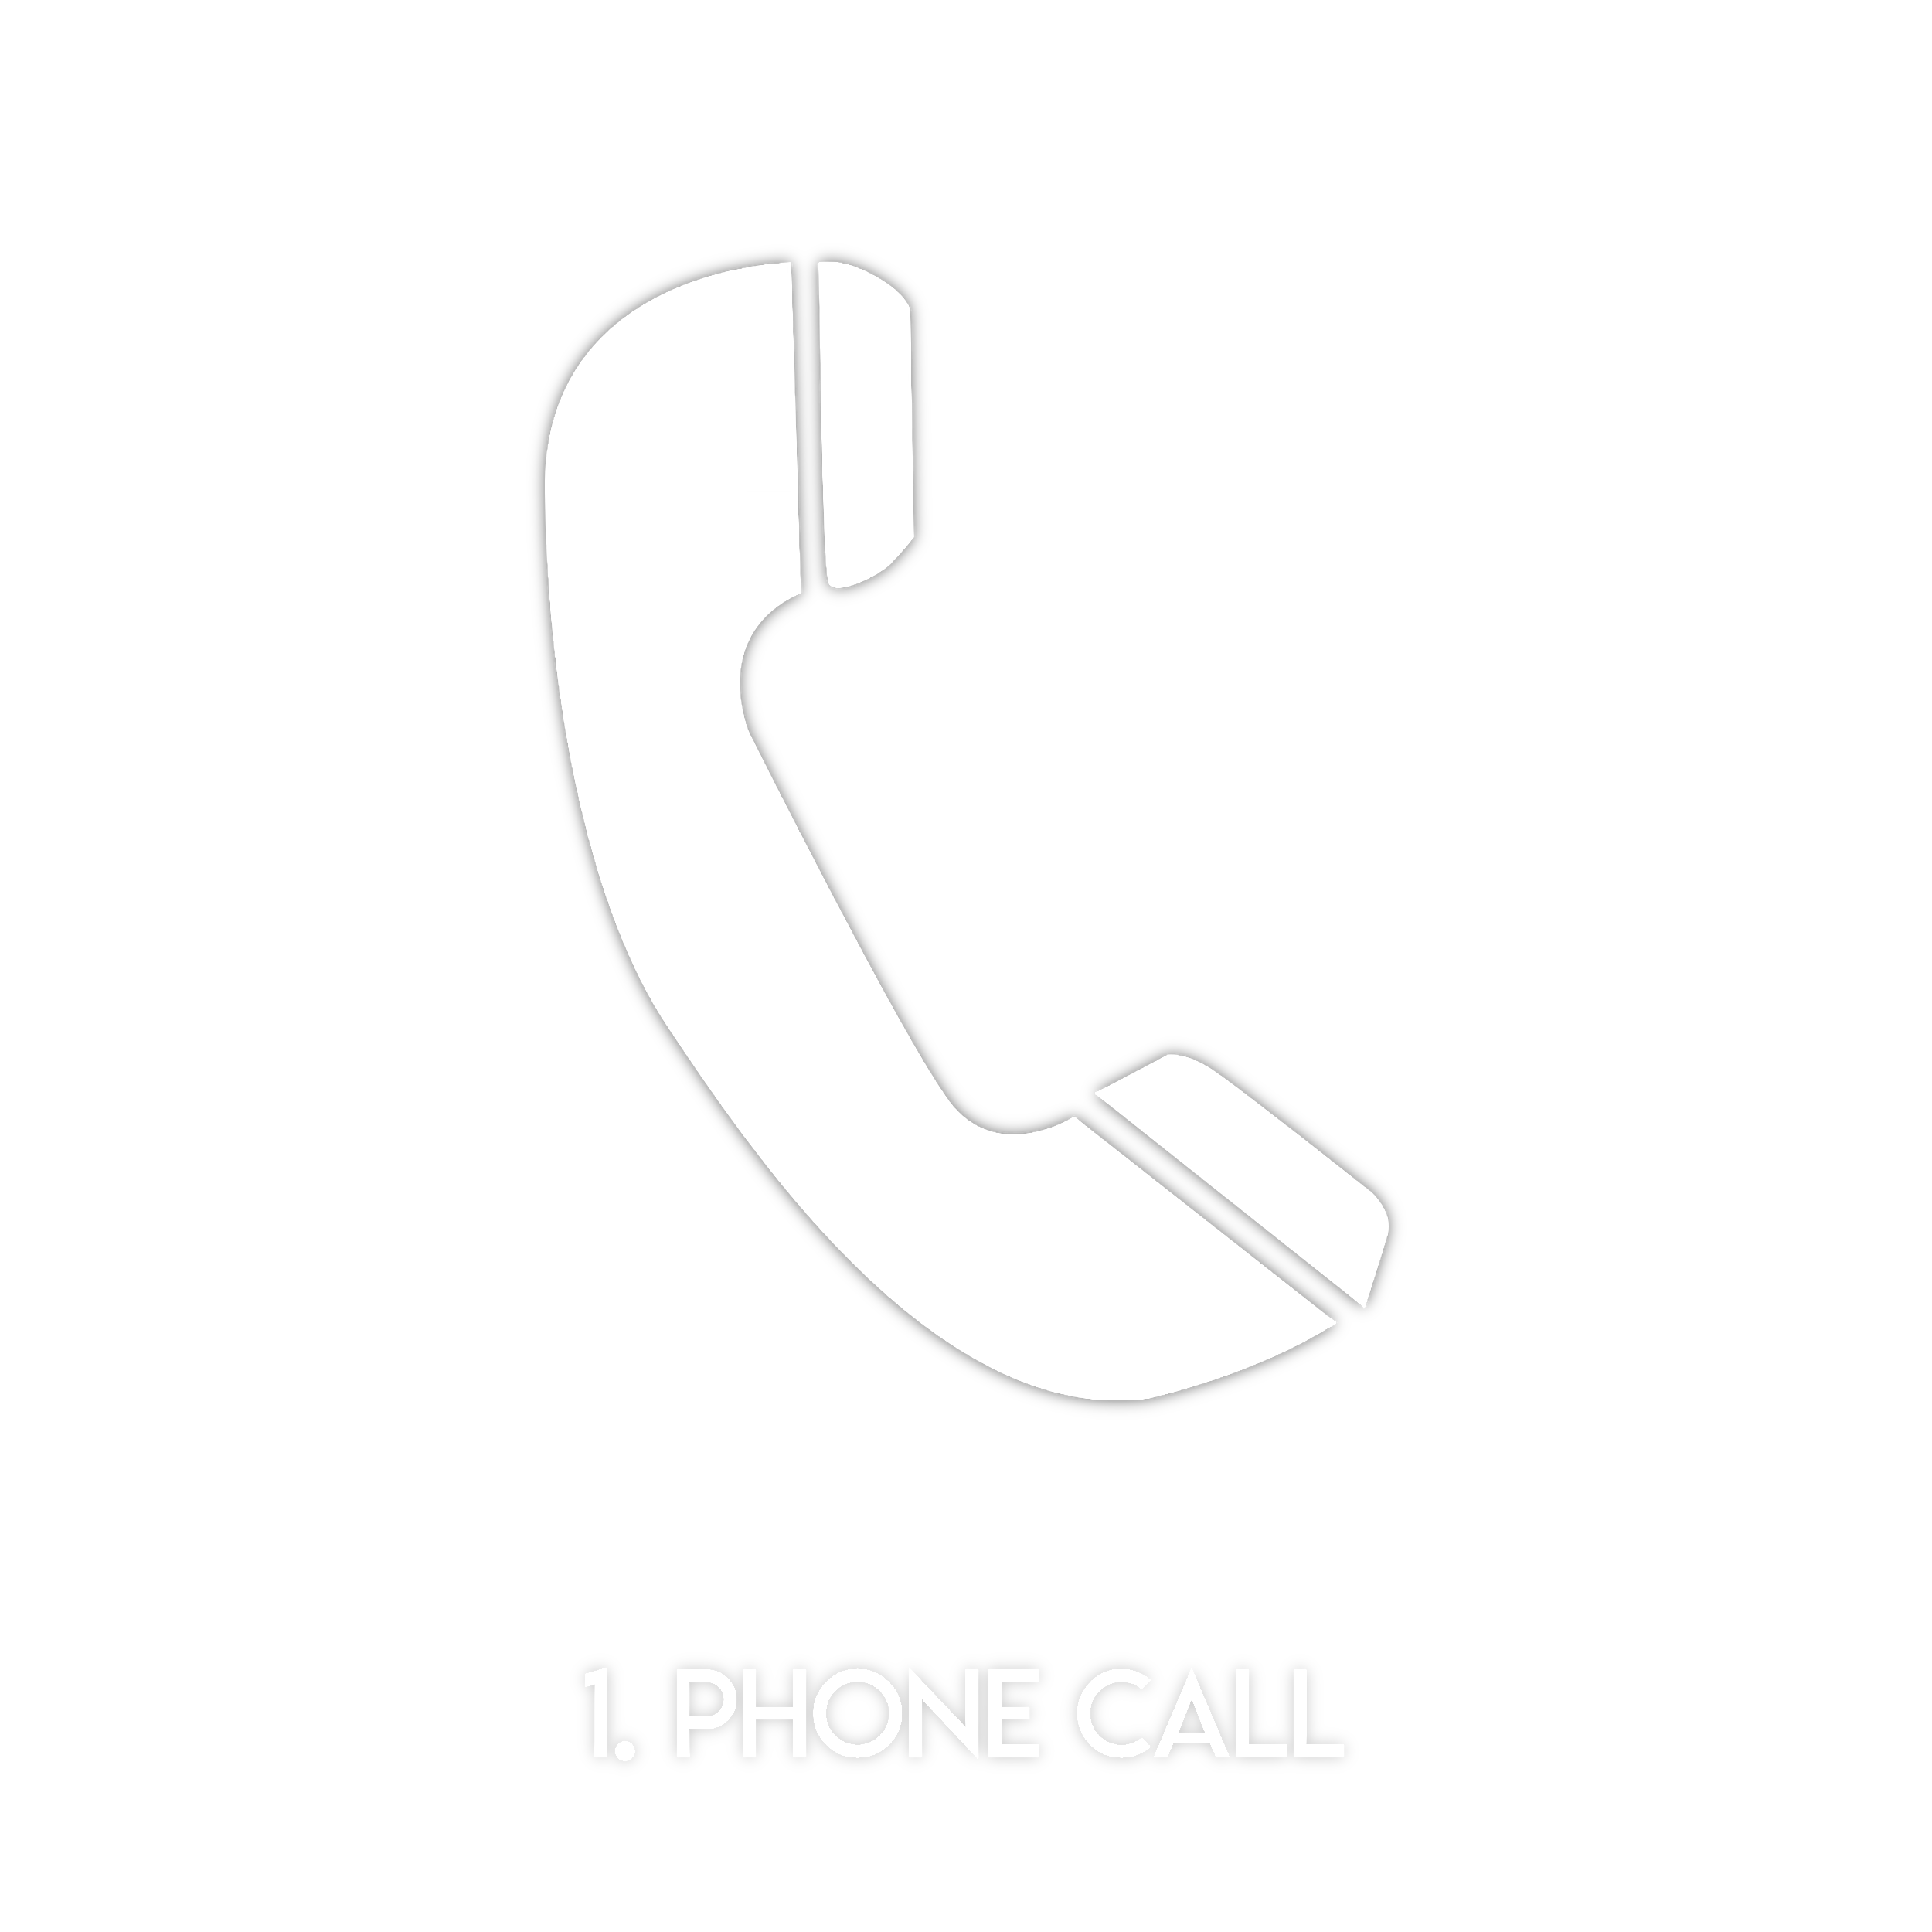 Let's have a conversation! We want here about YOU! Contact us through the button below, and we'll call you right away!